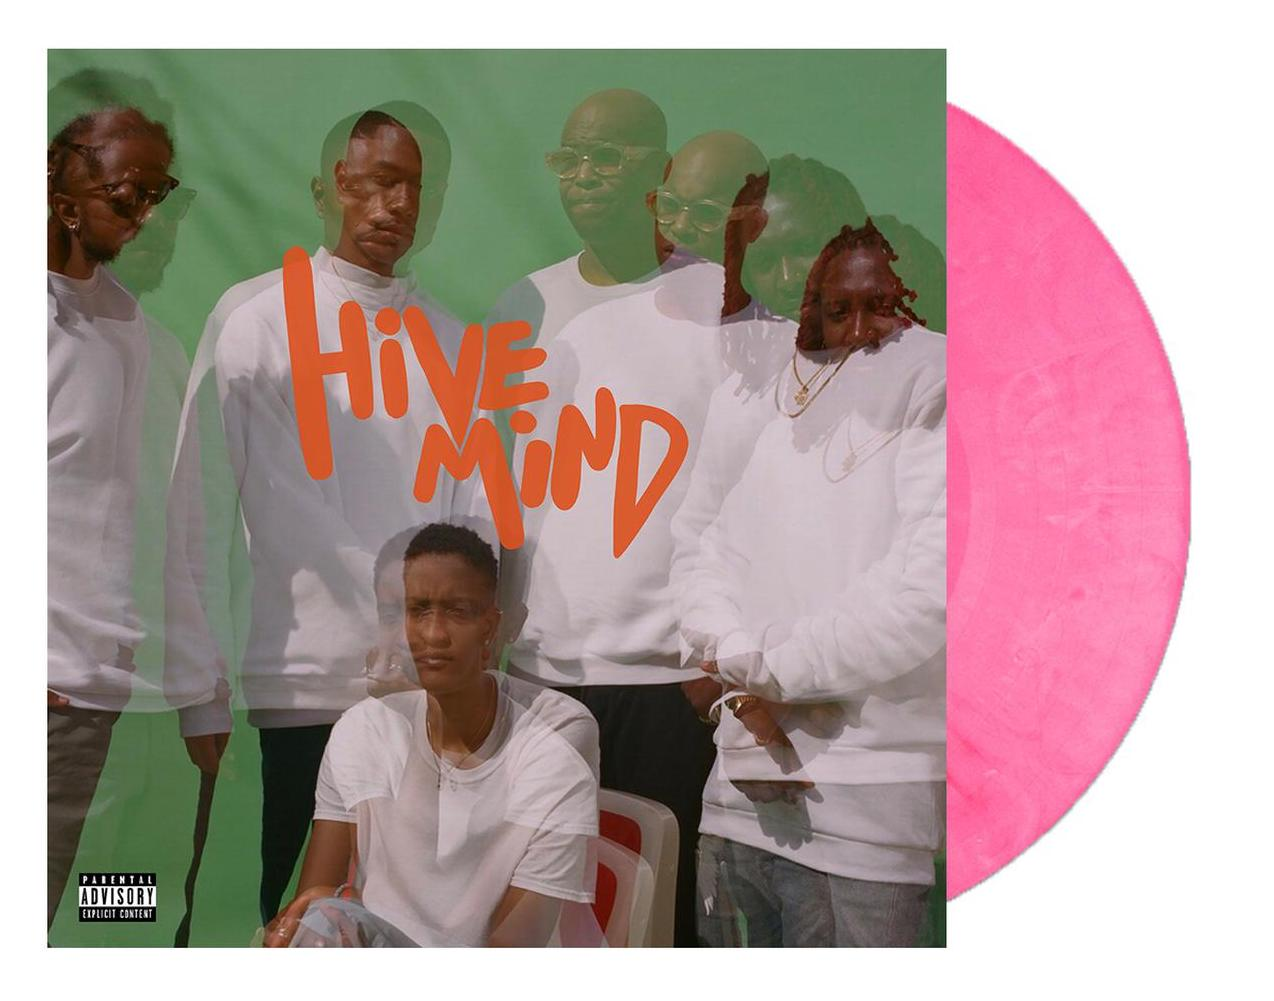 hive mind the internet album cover